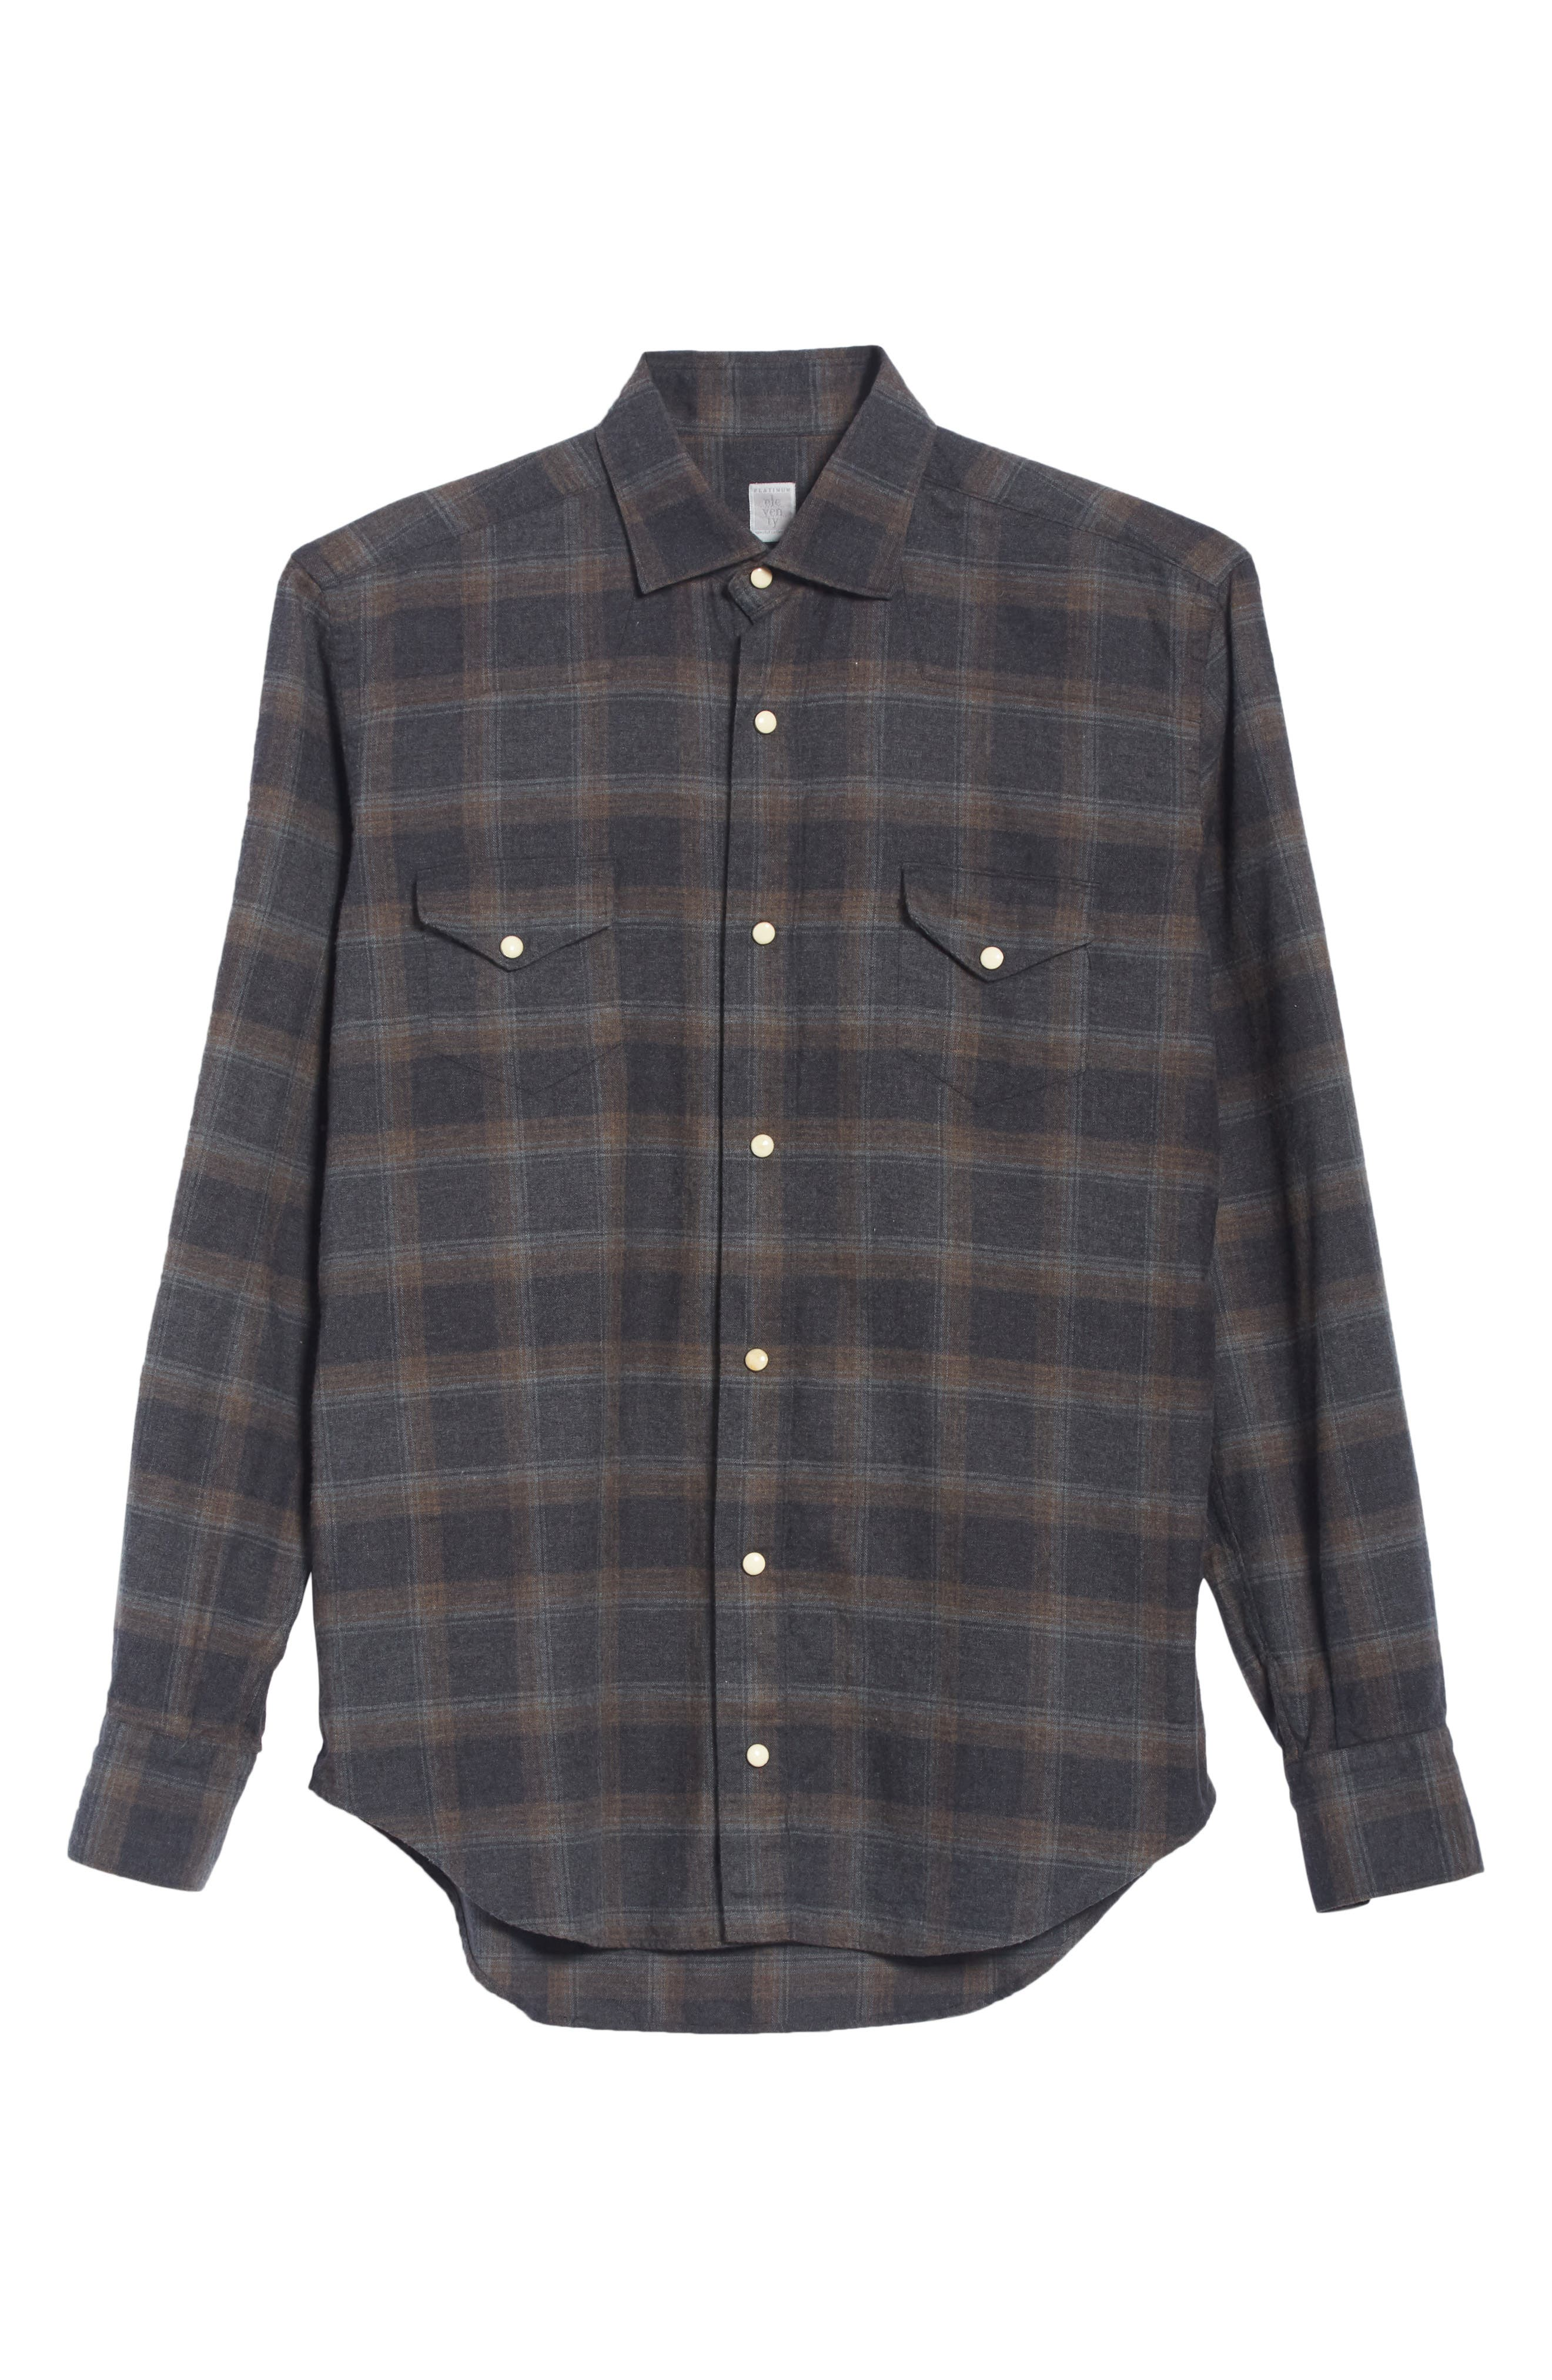 Slim Fit Plaid Western Shirt,                             Alternate thumbnail 6, color,                             GREY/ BROWN